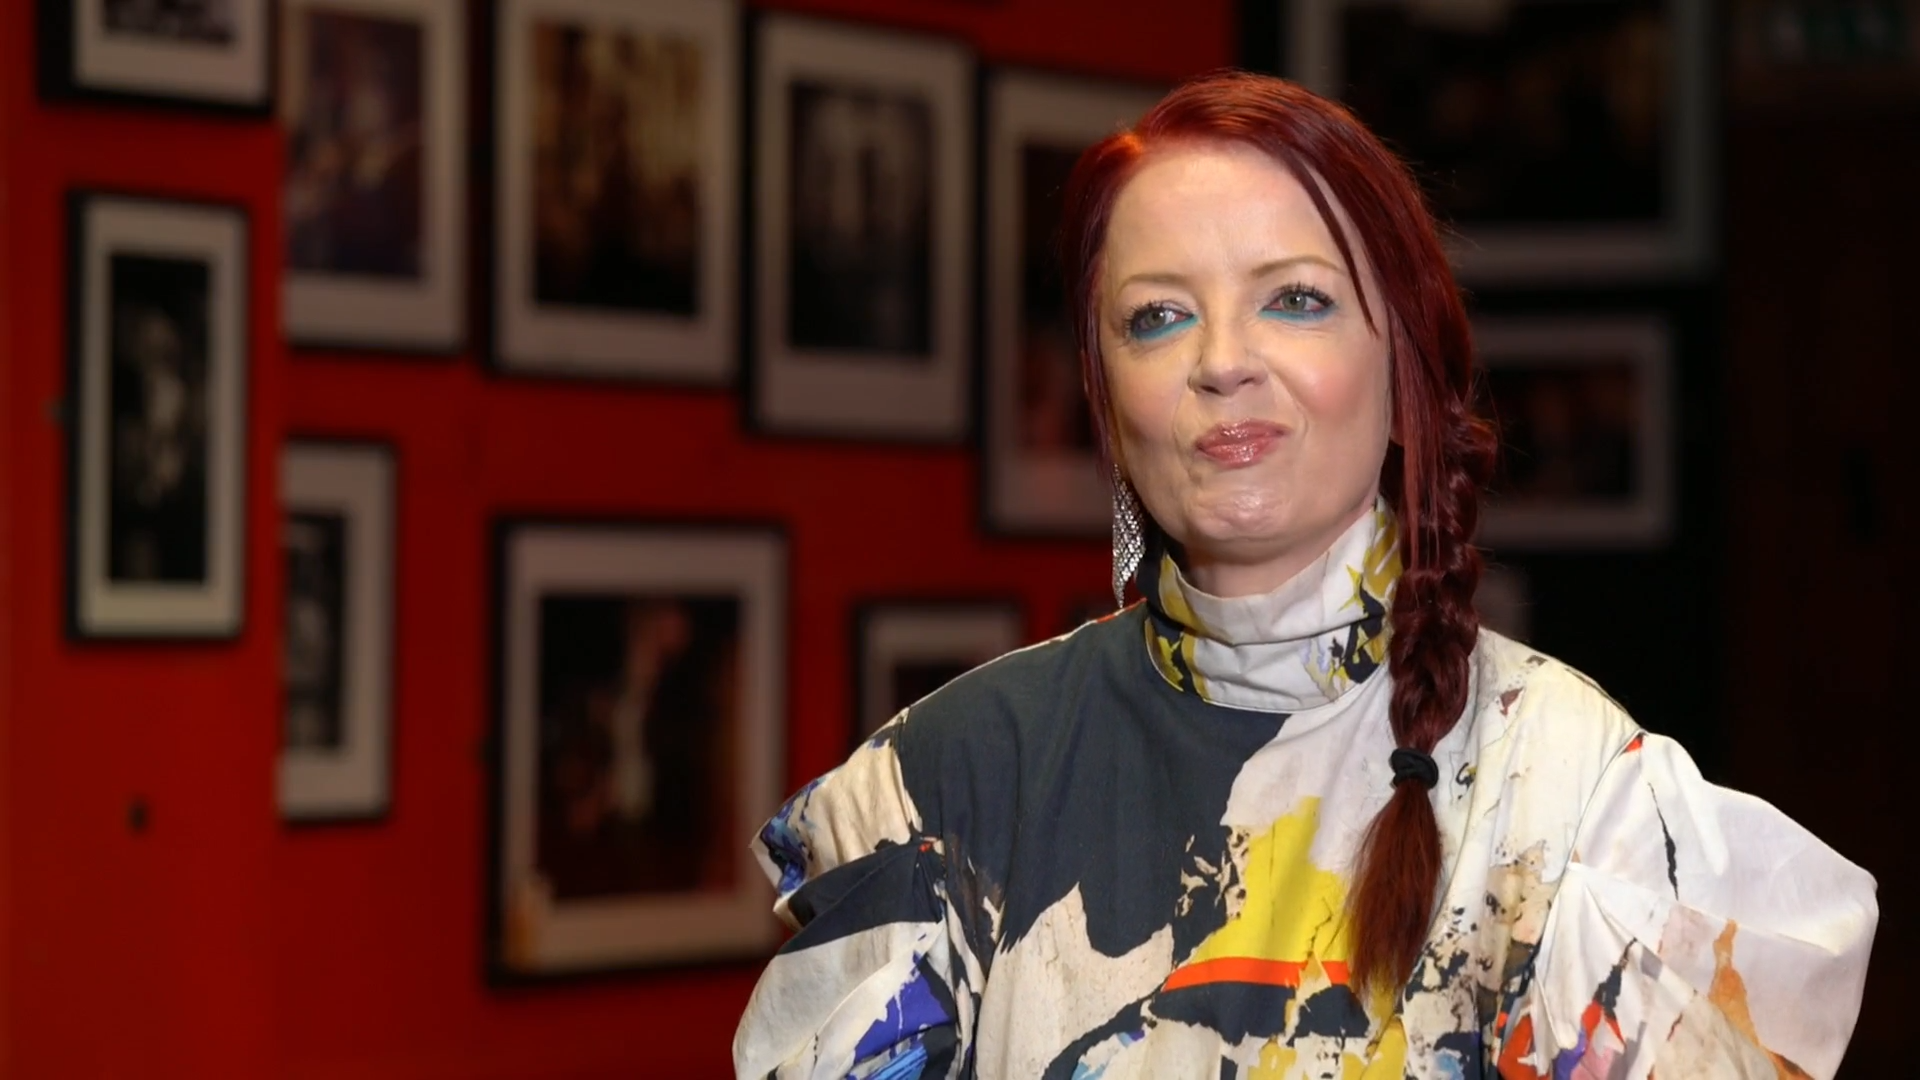 Shirley Manson says day of reckoning coming for music industry - channel 4